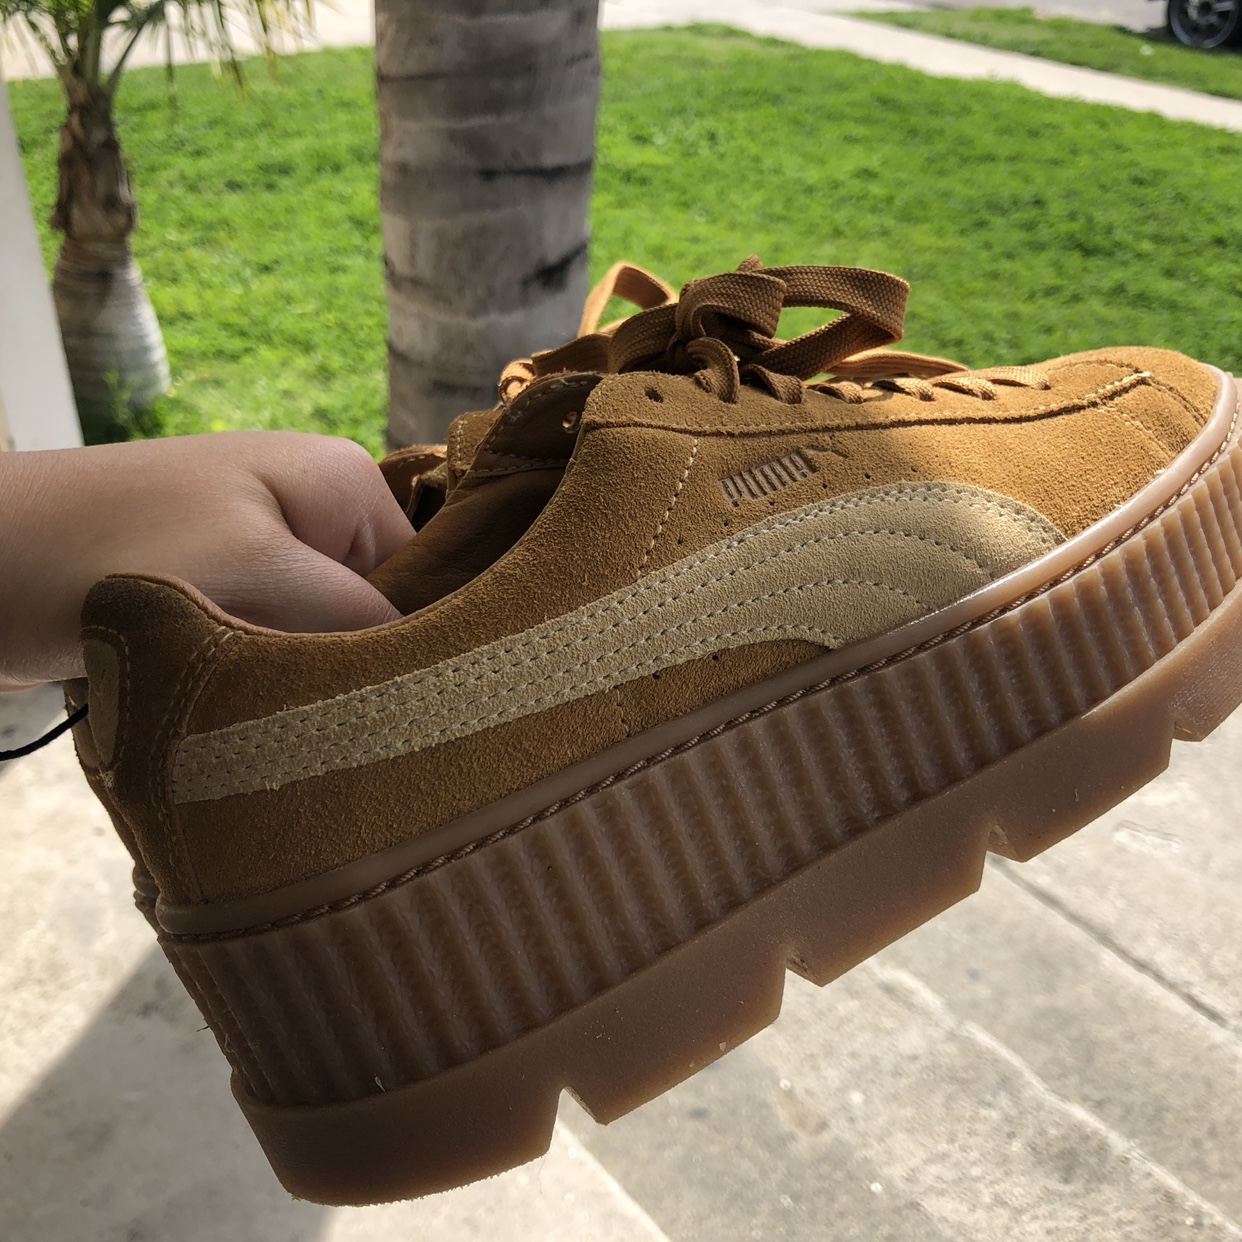 buy popular 25a1d 39788 FENTY PUMA by Rihanna Cleated Suede Creepers Caramel ...